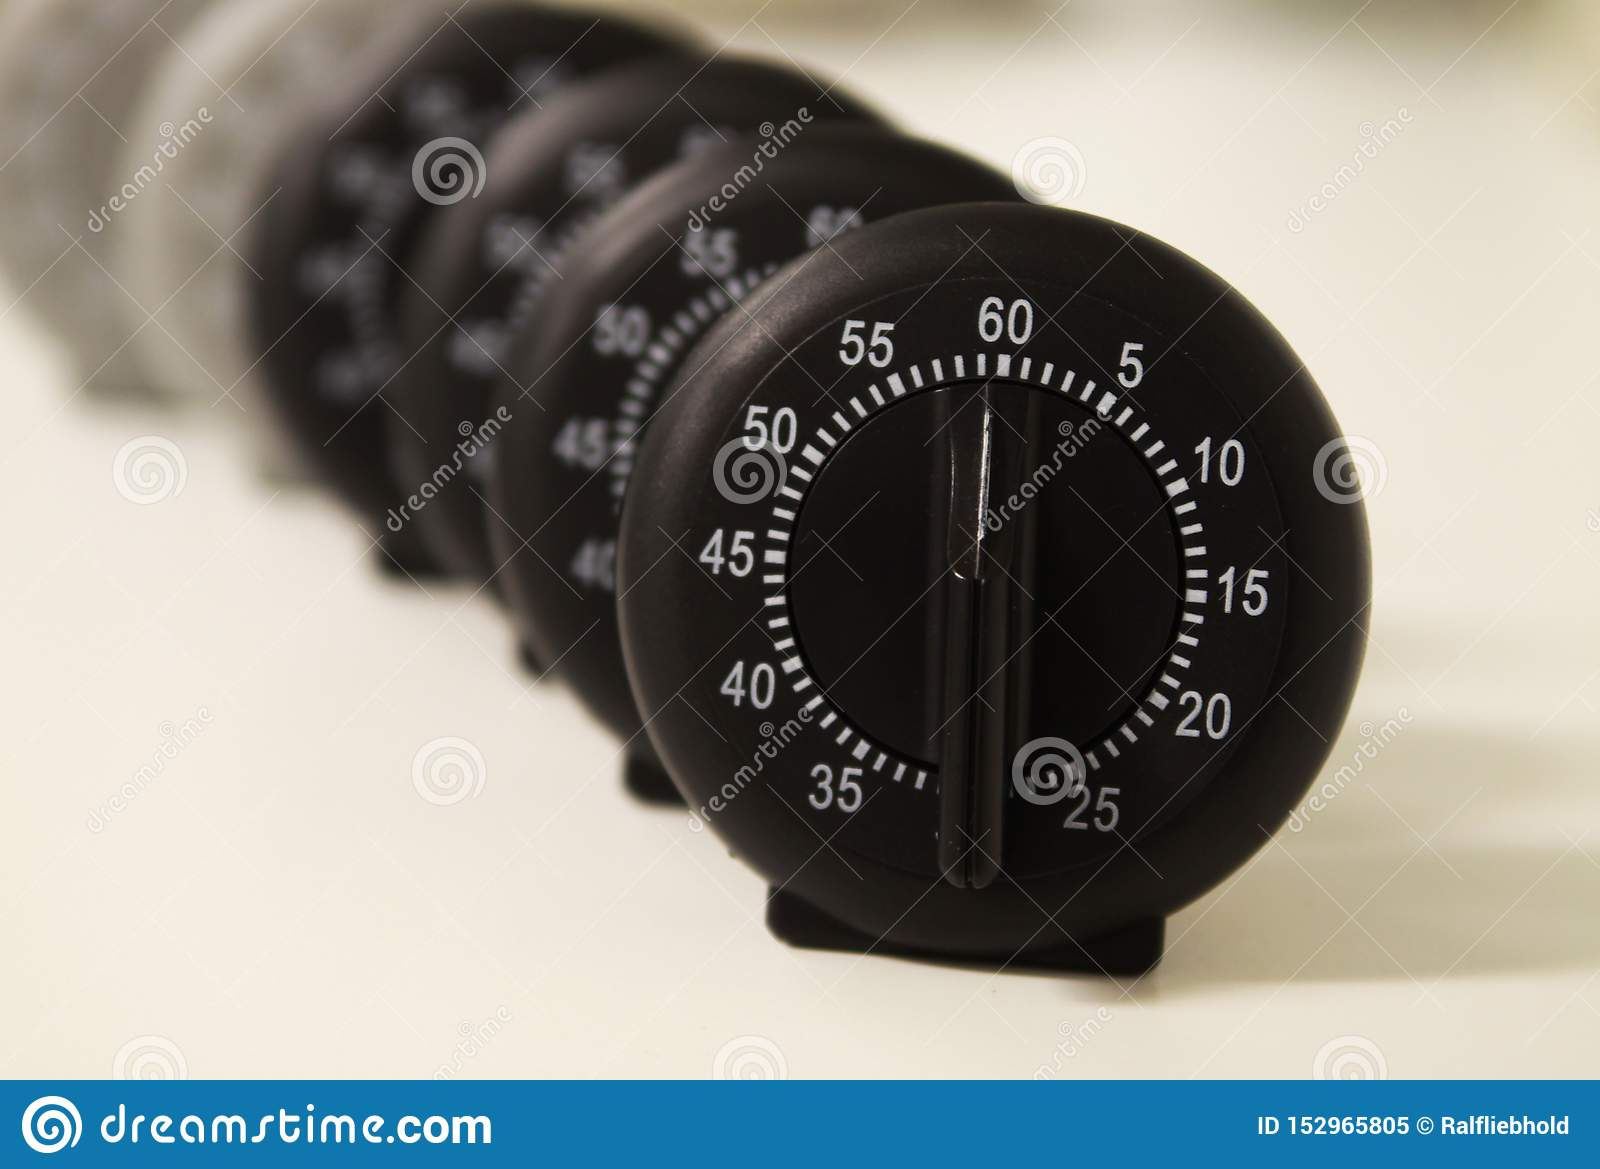 Close up of a group of analog stop watches